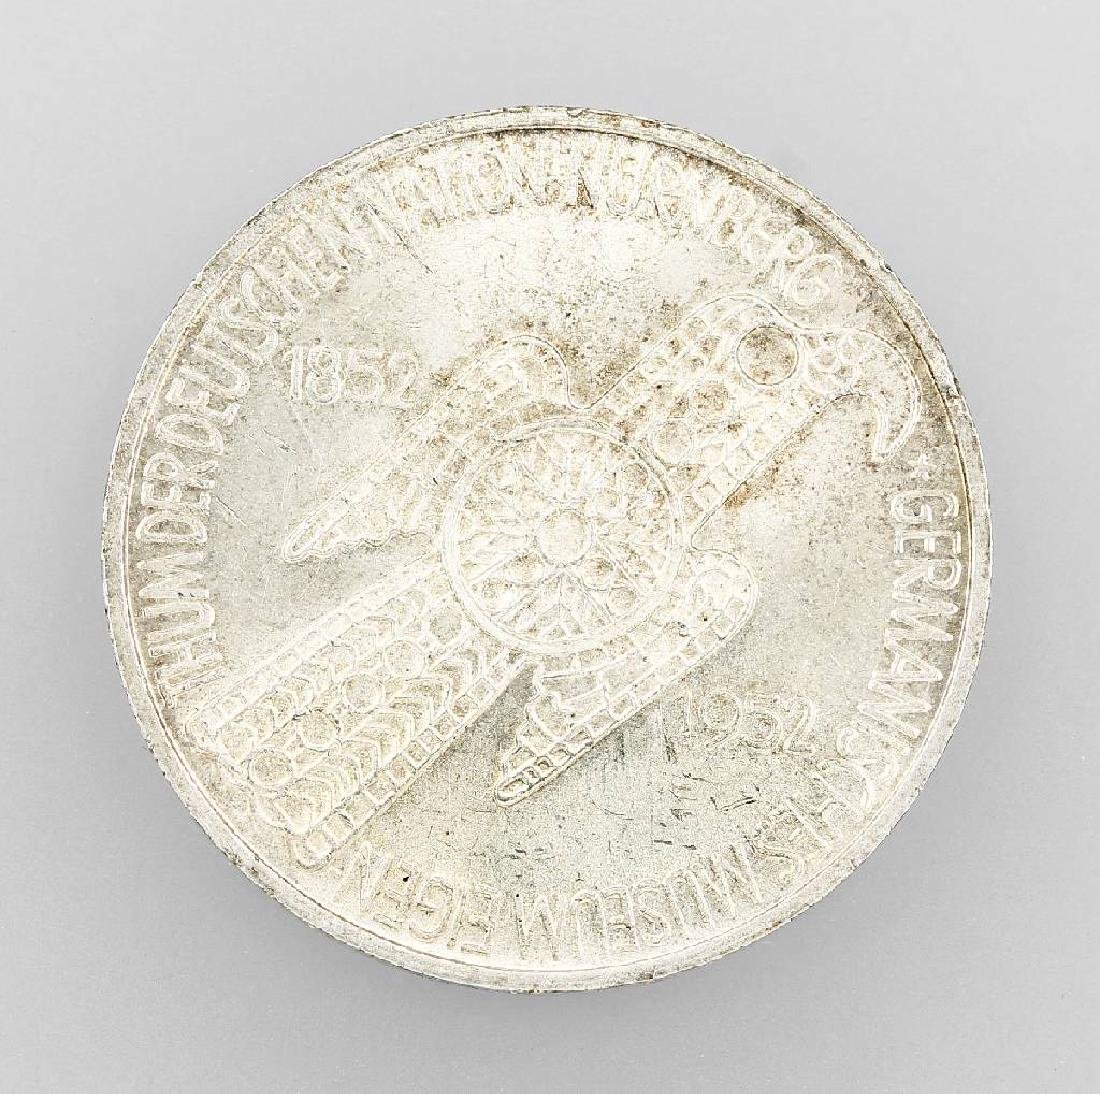 Silver coin, 5 Mark, Germany, 1952